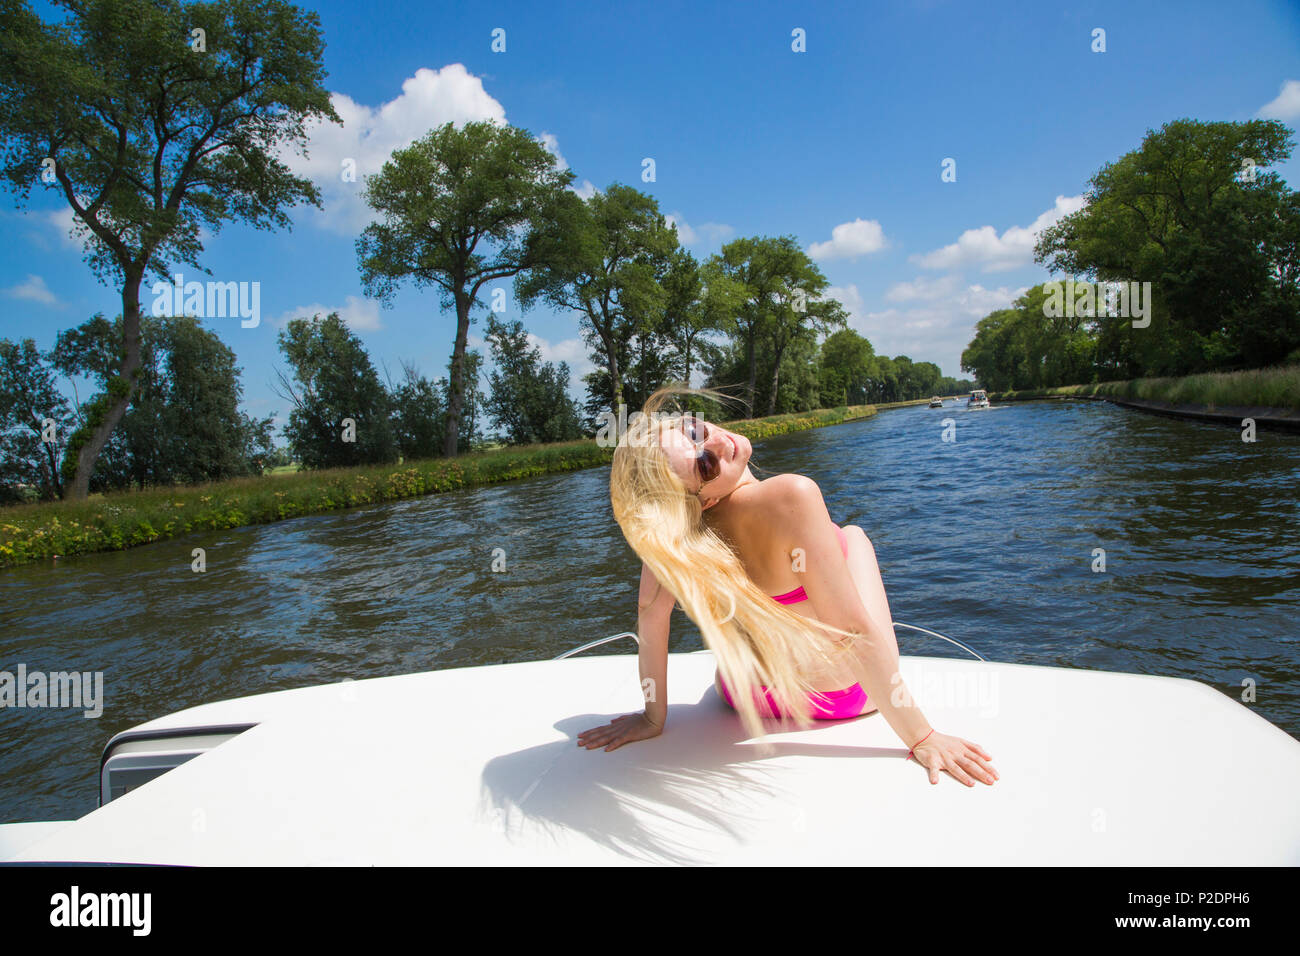 Young blonde woman wearing a bikini relaxing on the deck of a Le Boat Royal Mystique houseboat on Plassendale - Niuewpoort canal Stock Photo